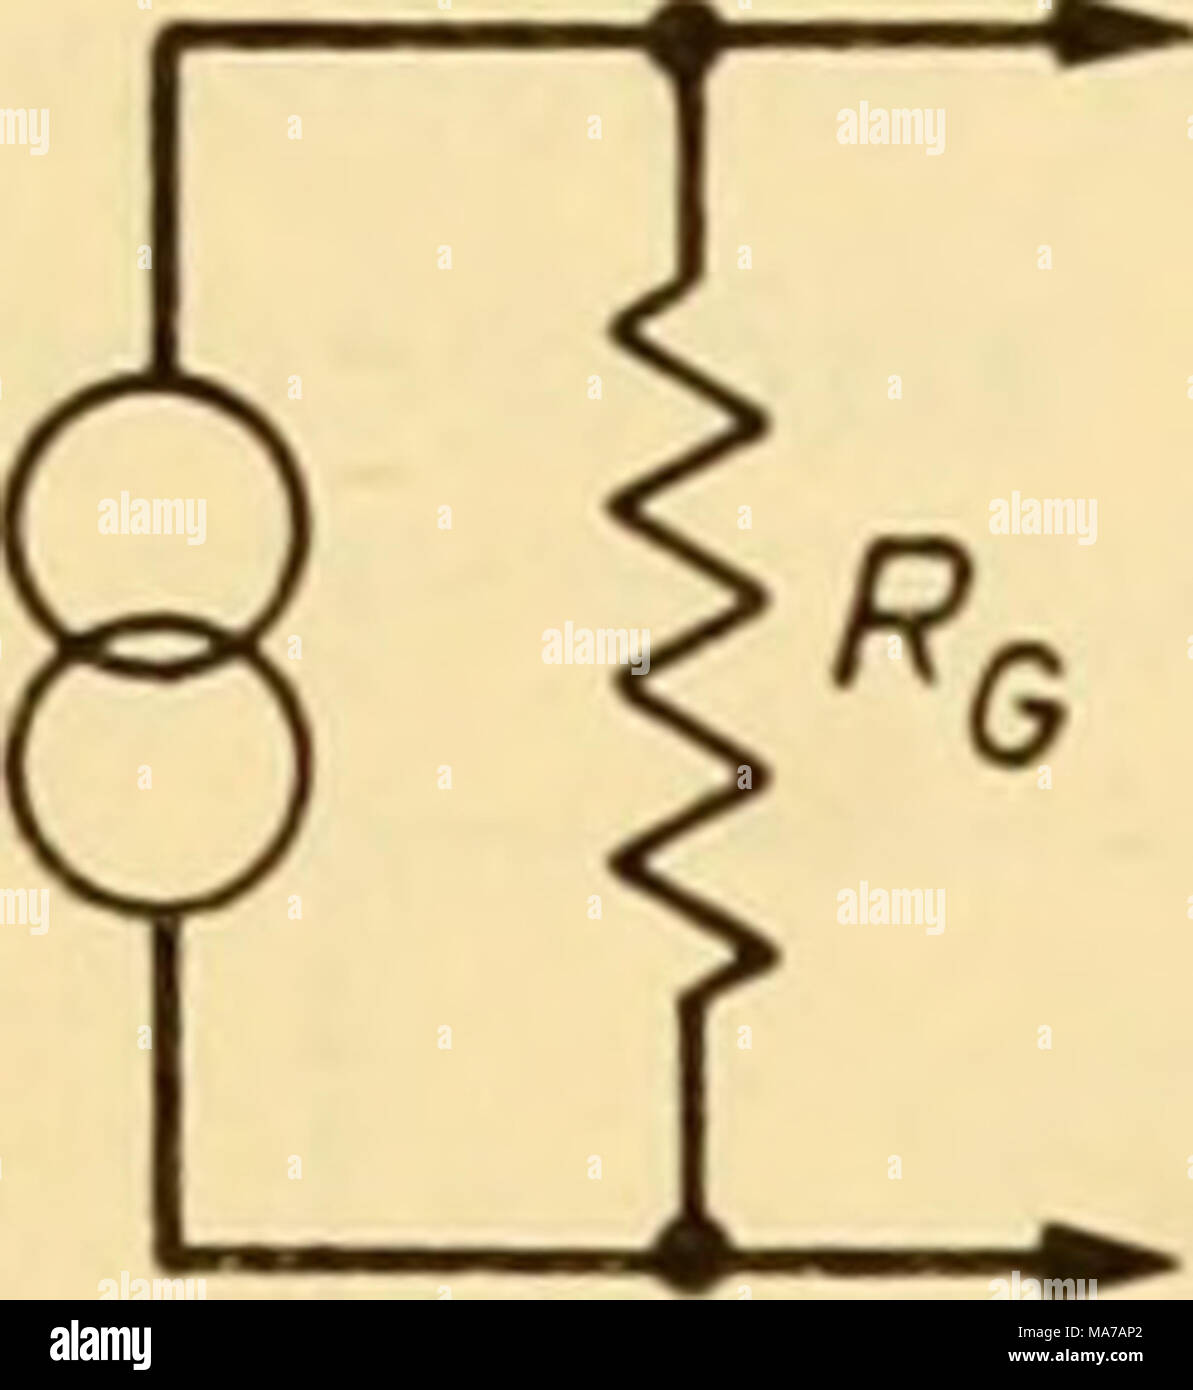 """. Electronic apparatus for biological research . ^c Figure 45.14 signal generator of internal resistance Rq (Figure 45.14) then these exact expressions^ follow: The current gain   a/o""""t   ^Re - Re ^' 61,, R, + R, + Rl The input resistance, /?{"""", that is, the resistance seen looking in at the input terminals with the generator temporarily disconnected but with the load connected, equals R^ + RX + 7^- The voltage gain,  ^nut   Rl The output resistance, Rq^u that is, the resistance seen looking back into the output terminals with the load temporarily disconnected but with the generator connected Stock Photo"""